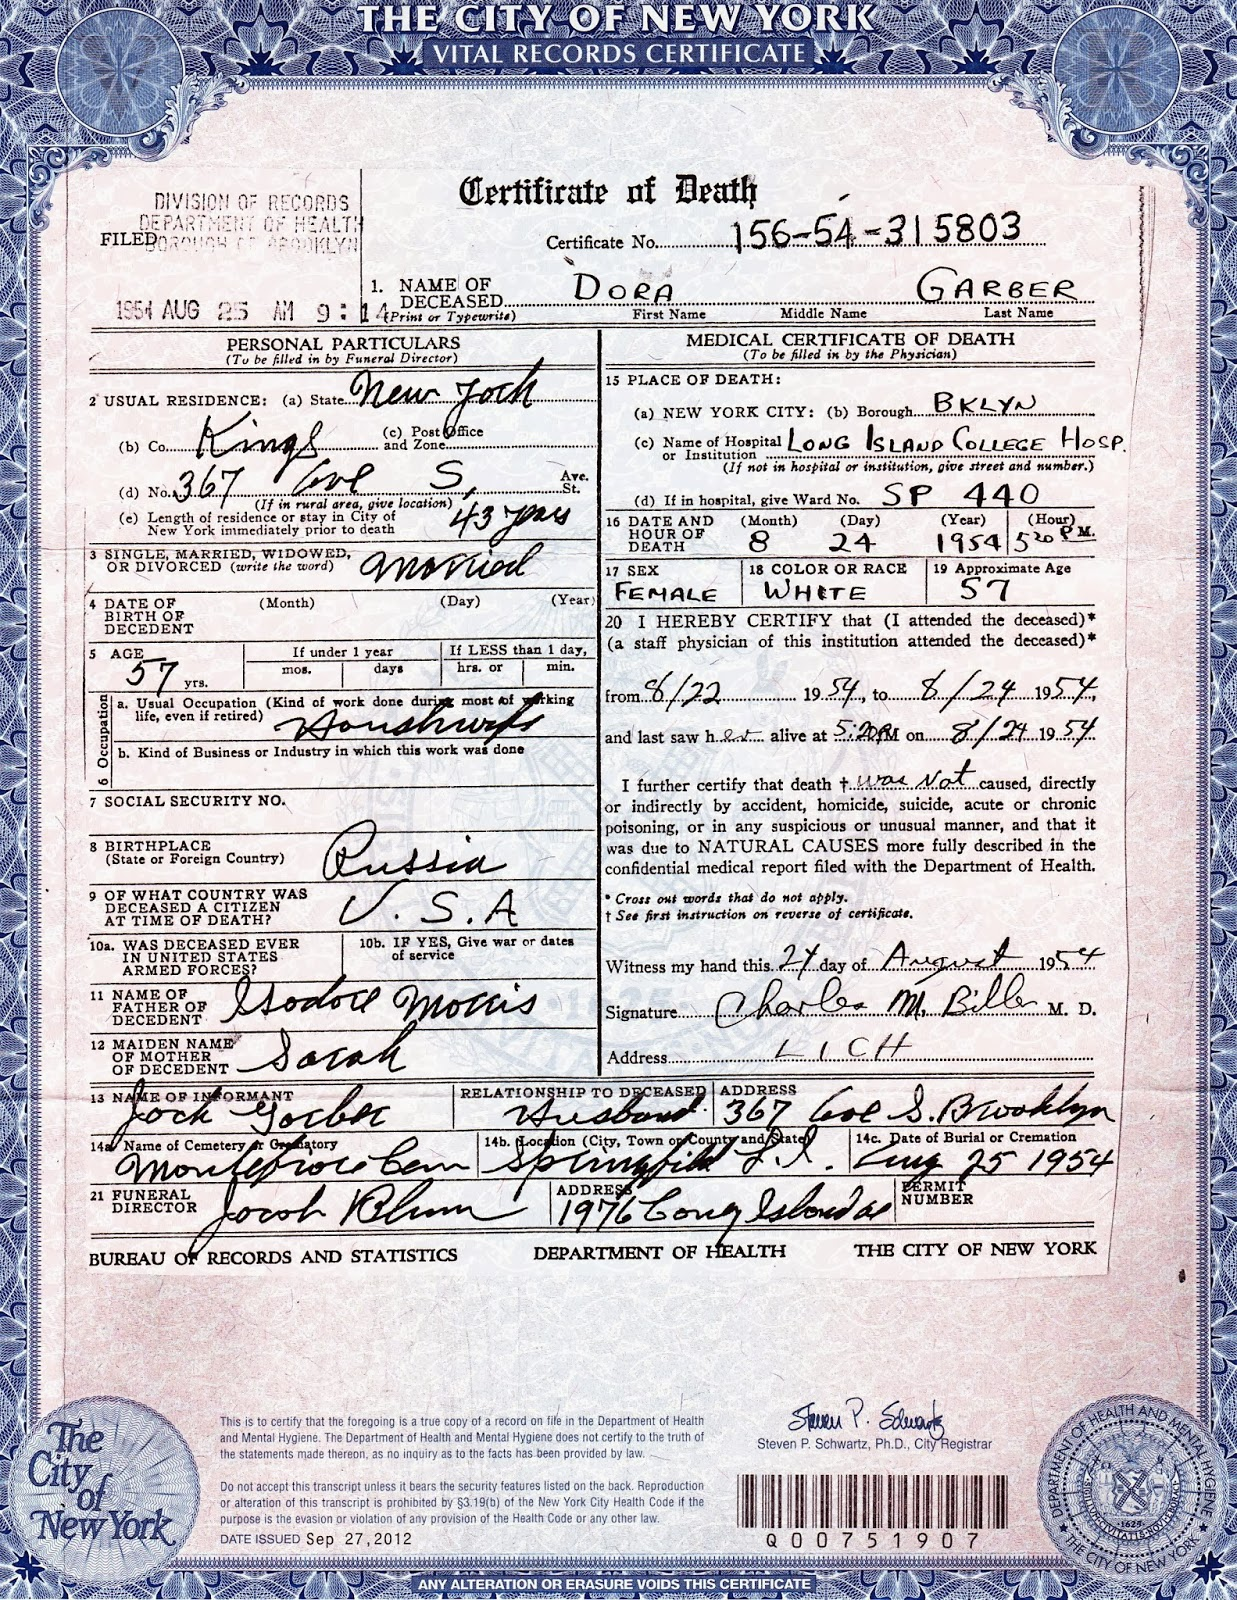 how to get a new birth certificate in ny